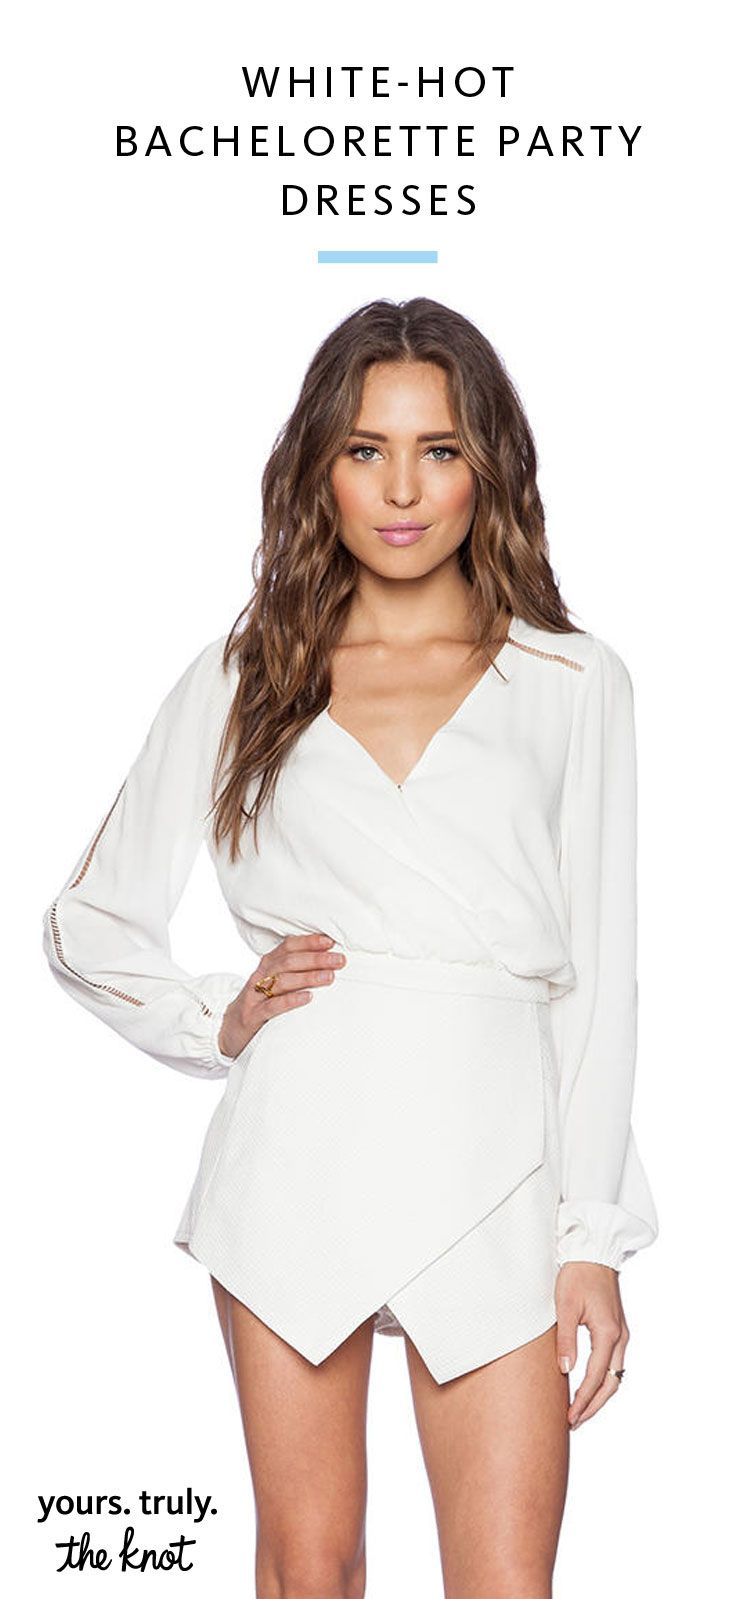 White Hot Bachelorette Party Dresses You'll Love |